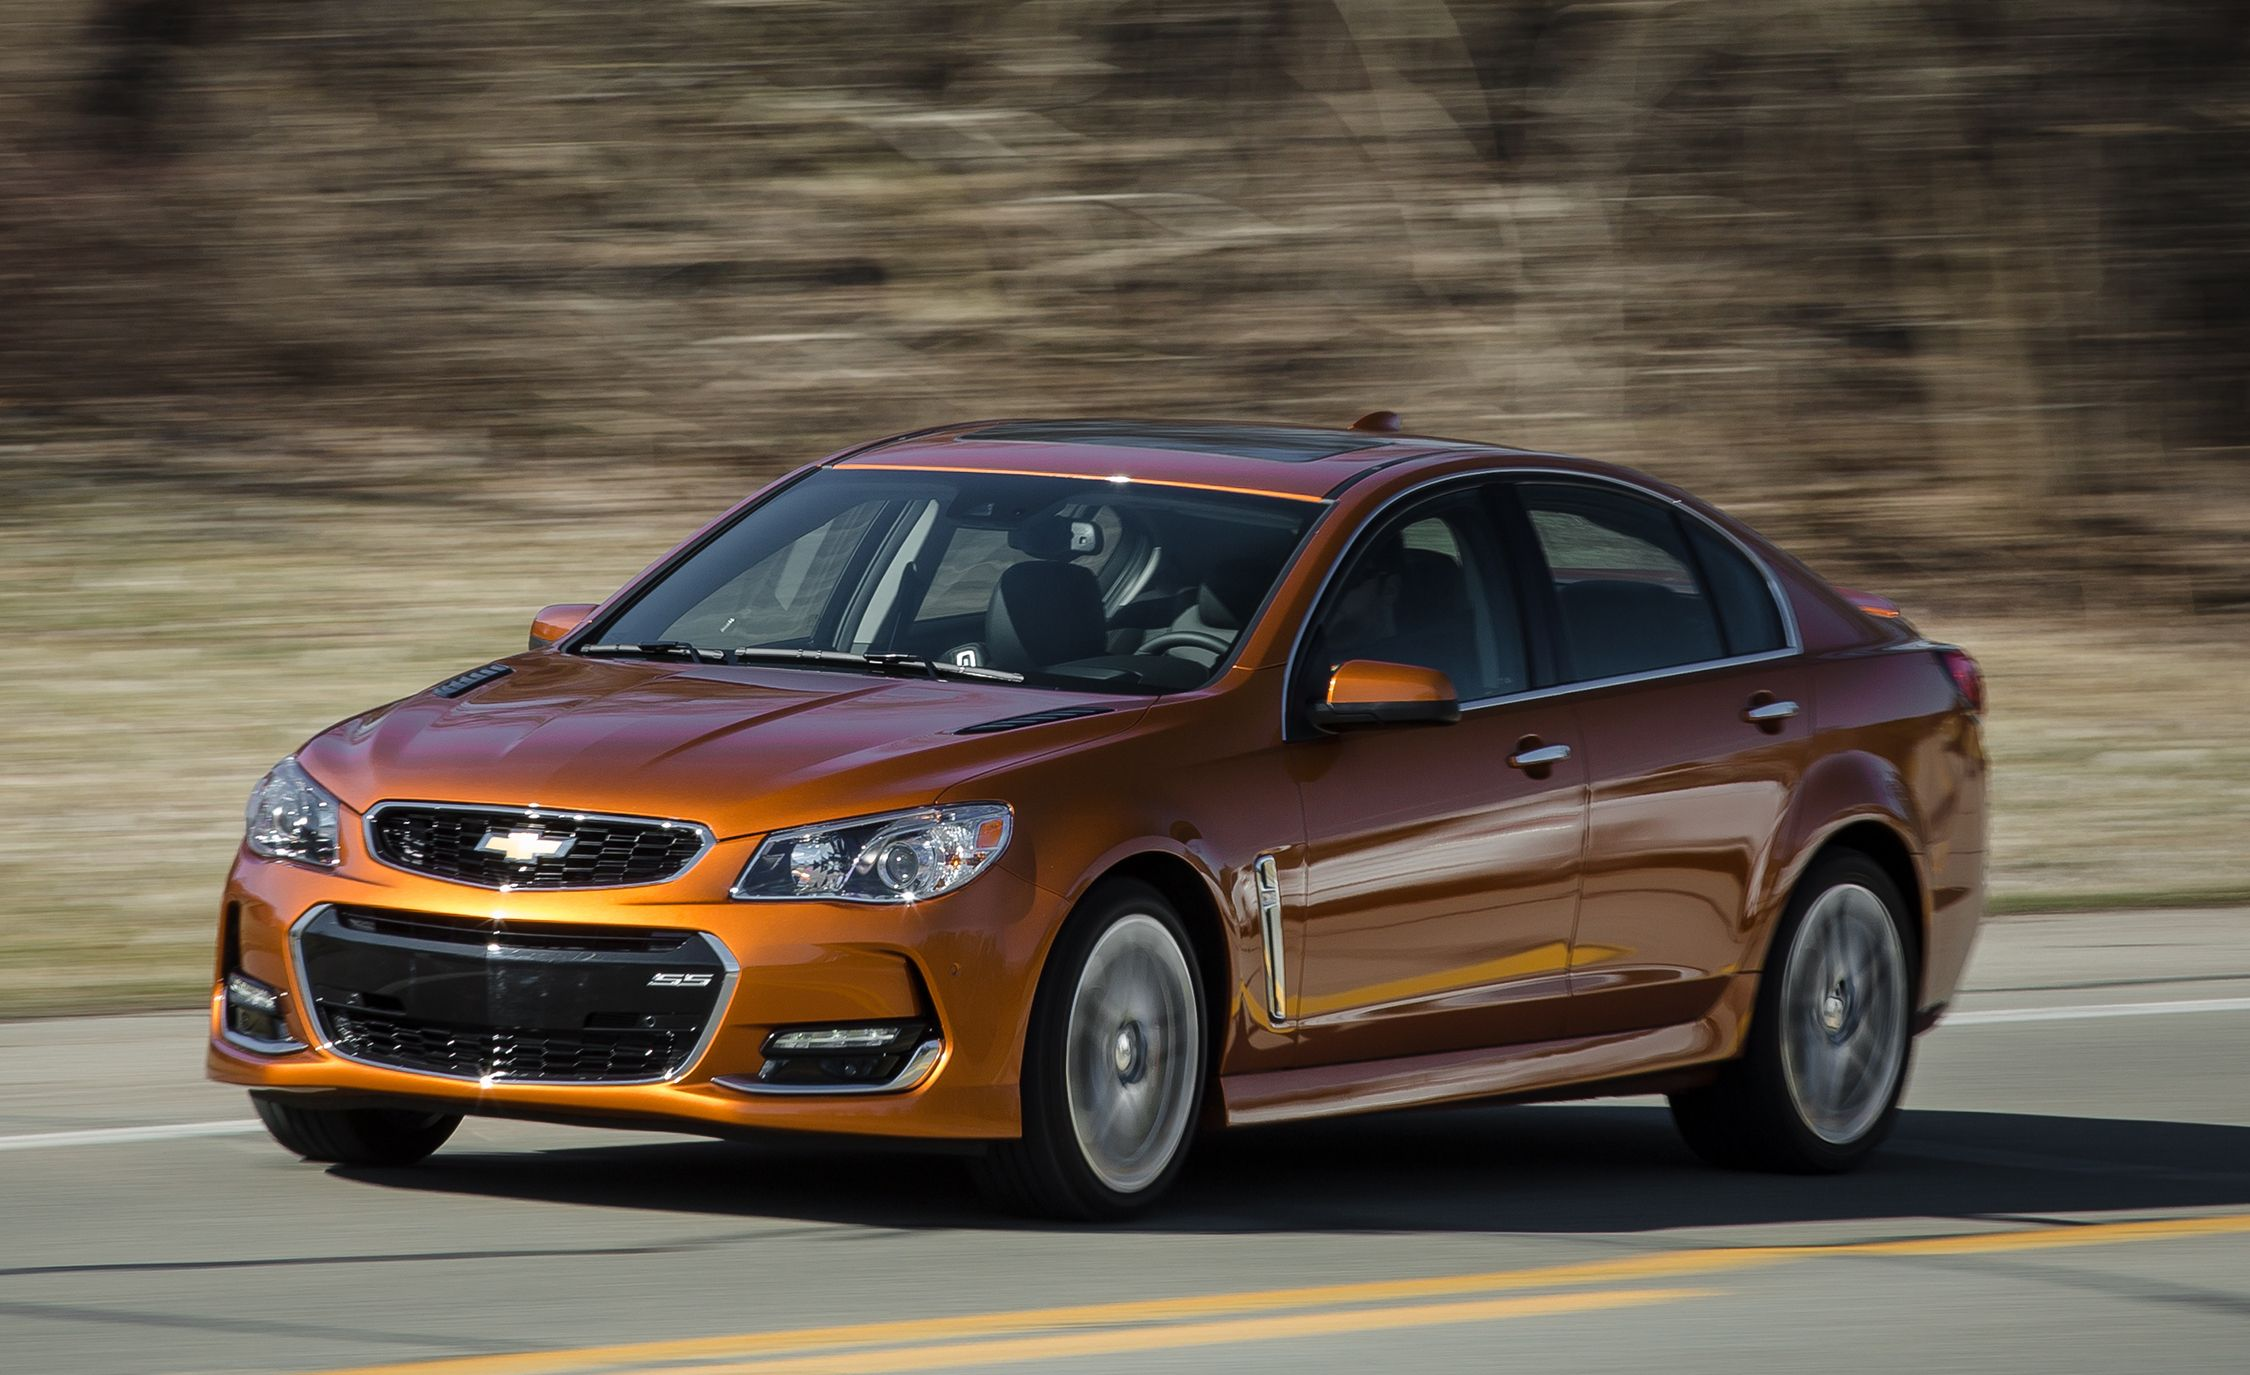 2018 Chevrolet SS Reviews | Chevrolet SS Price, Photos ...